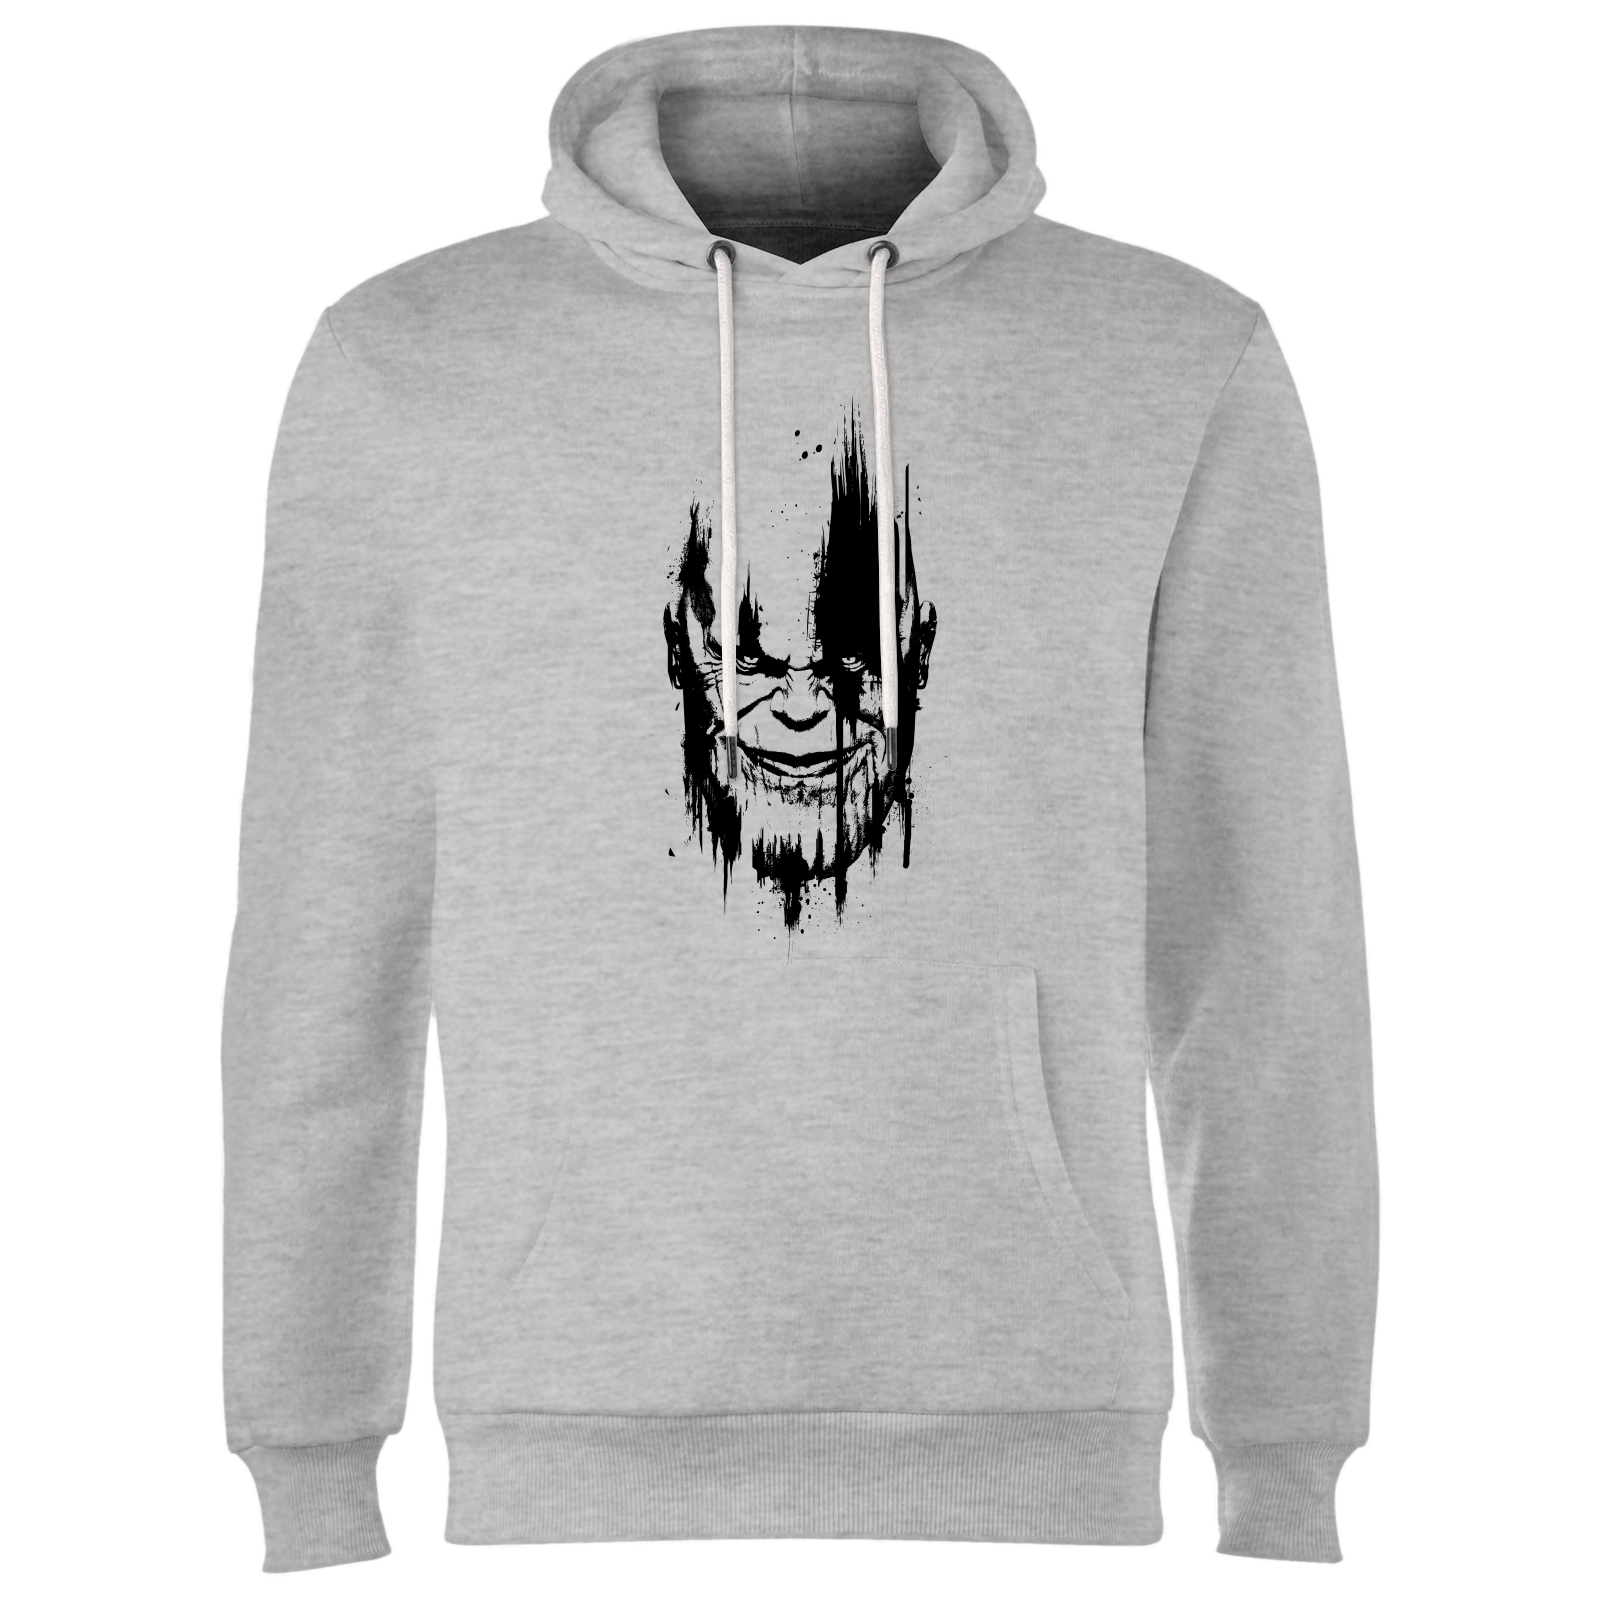 Marvel Avengers Infinity War Thanos Face Hoodie - Grey